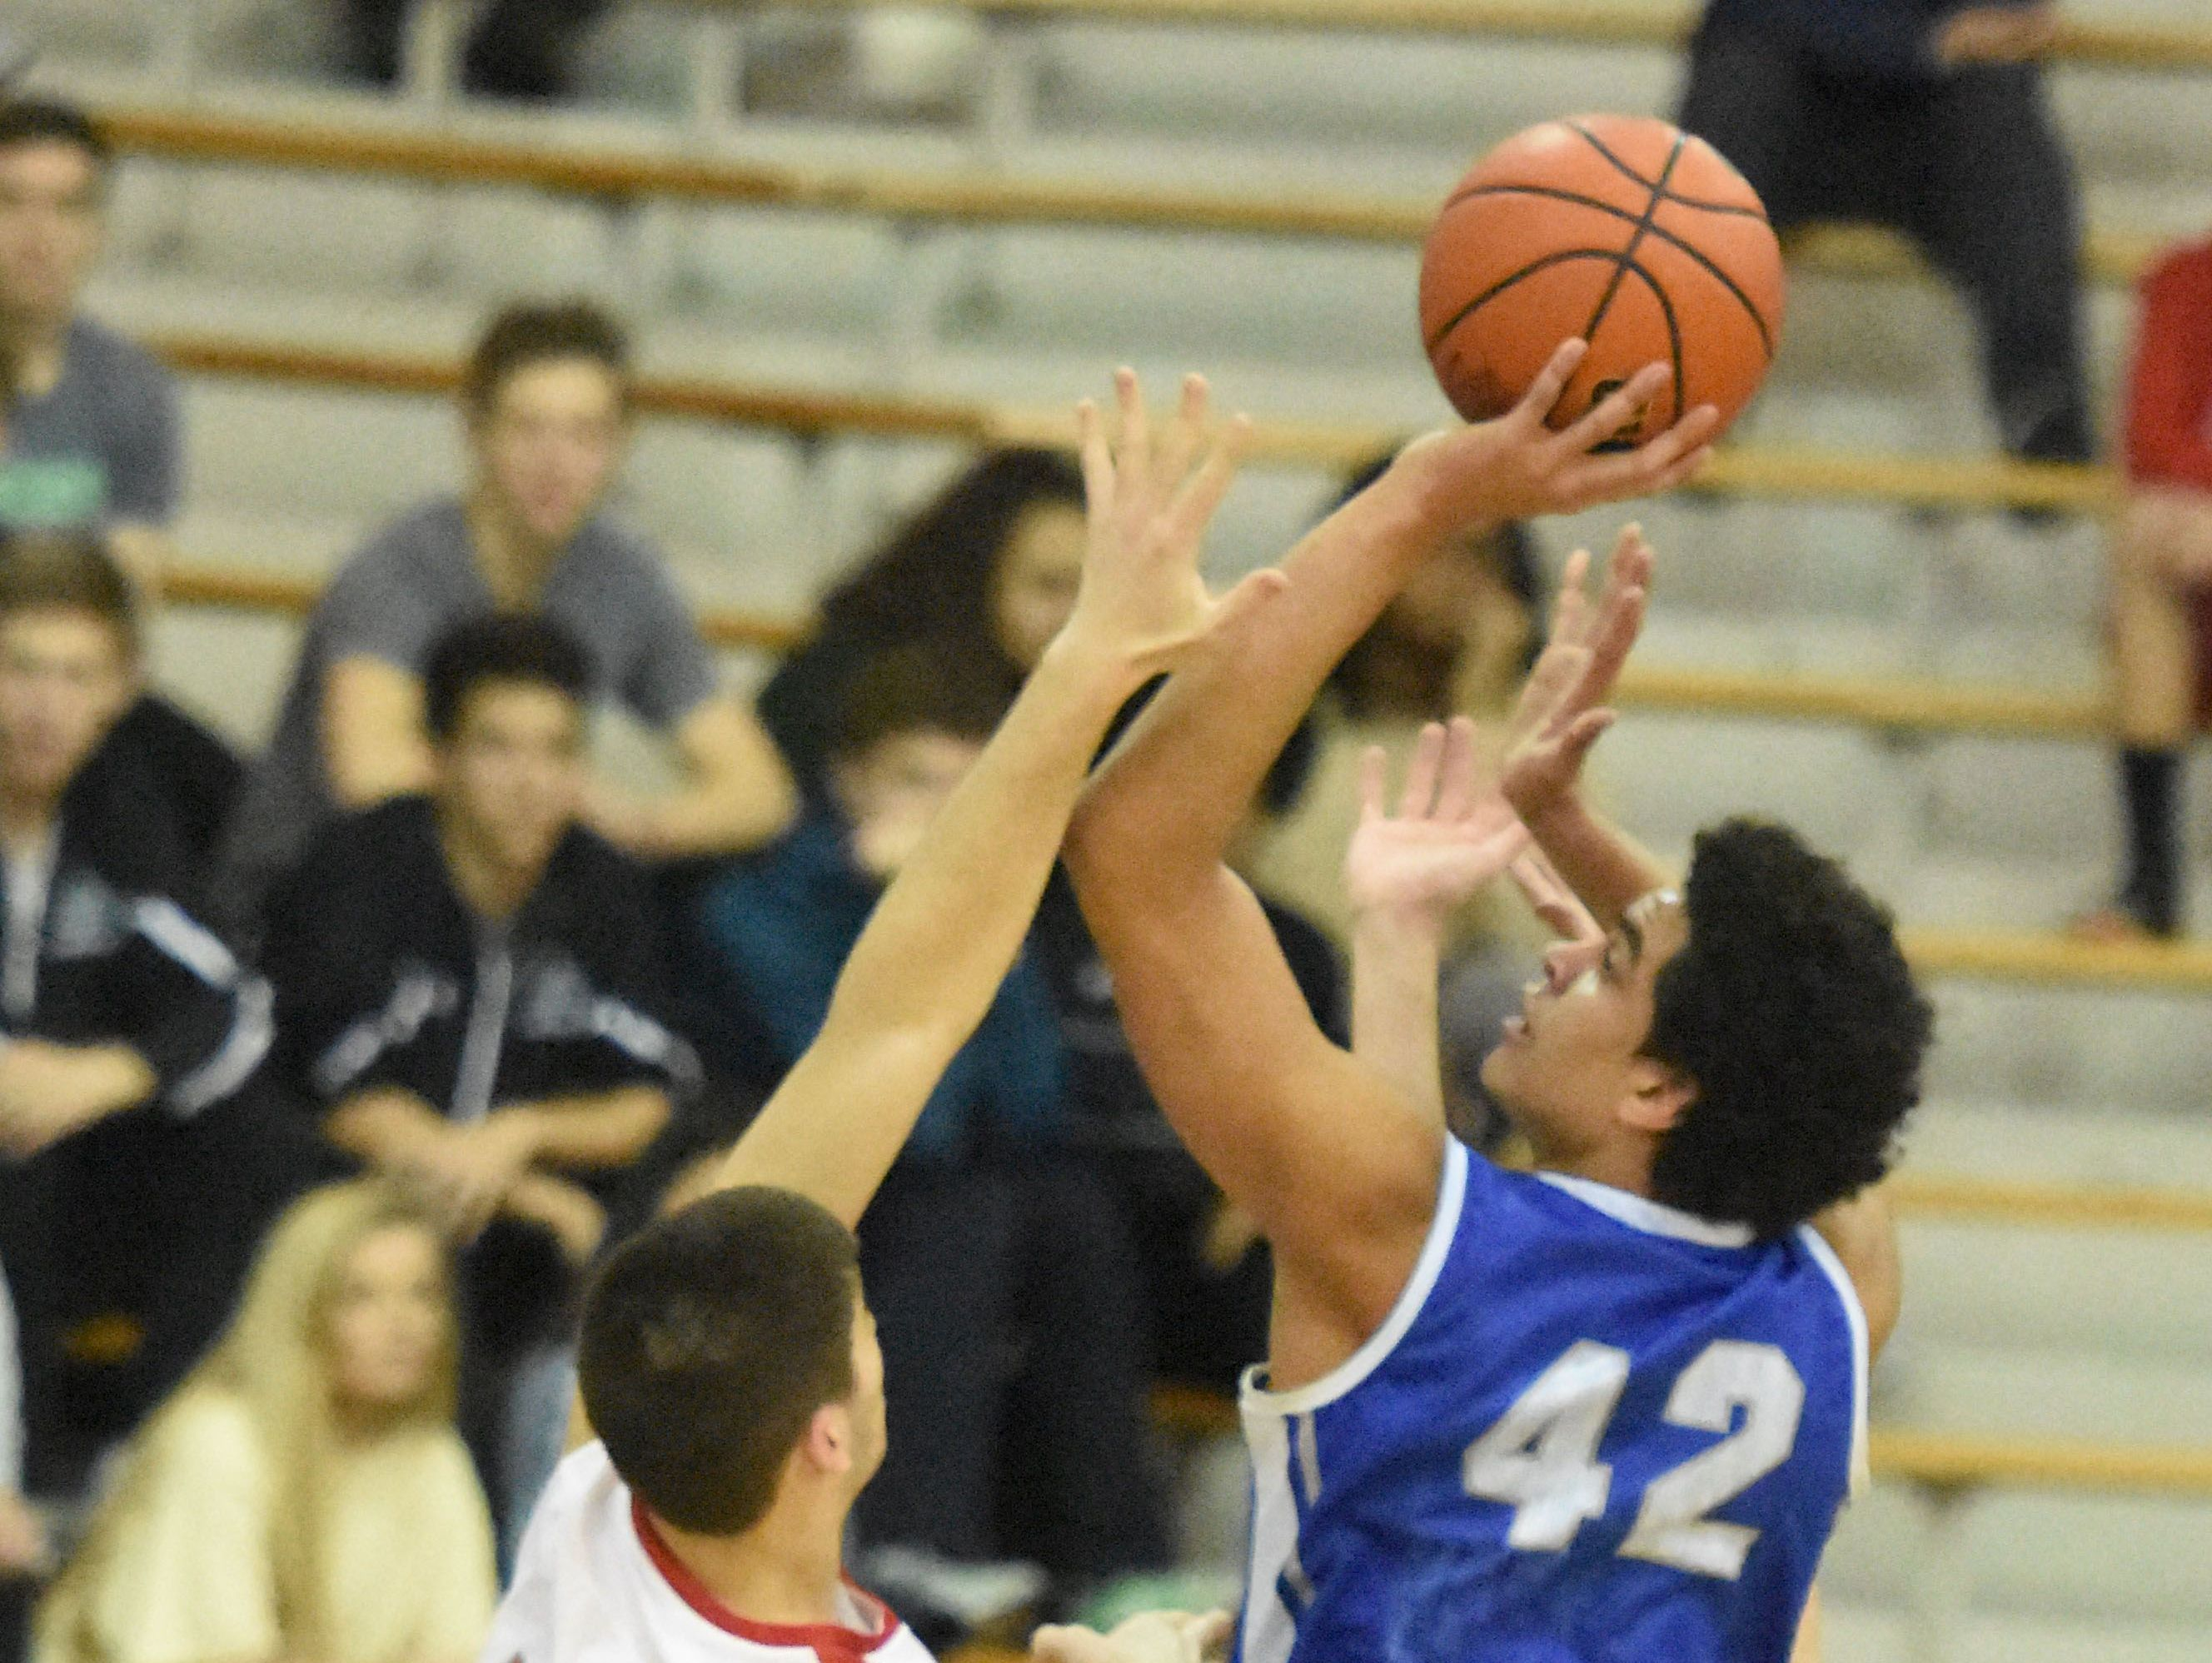 Hamilton Southeastern's Zach Gunn (42) once again paced the Royals past Fishers on Tuesday night.